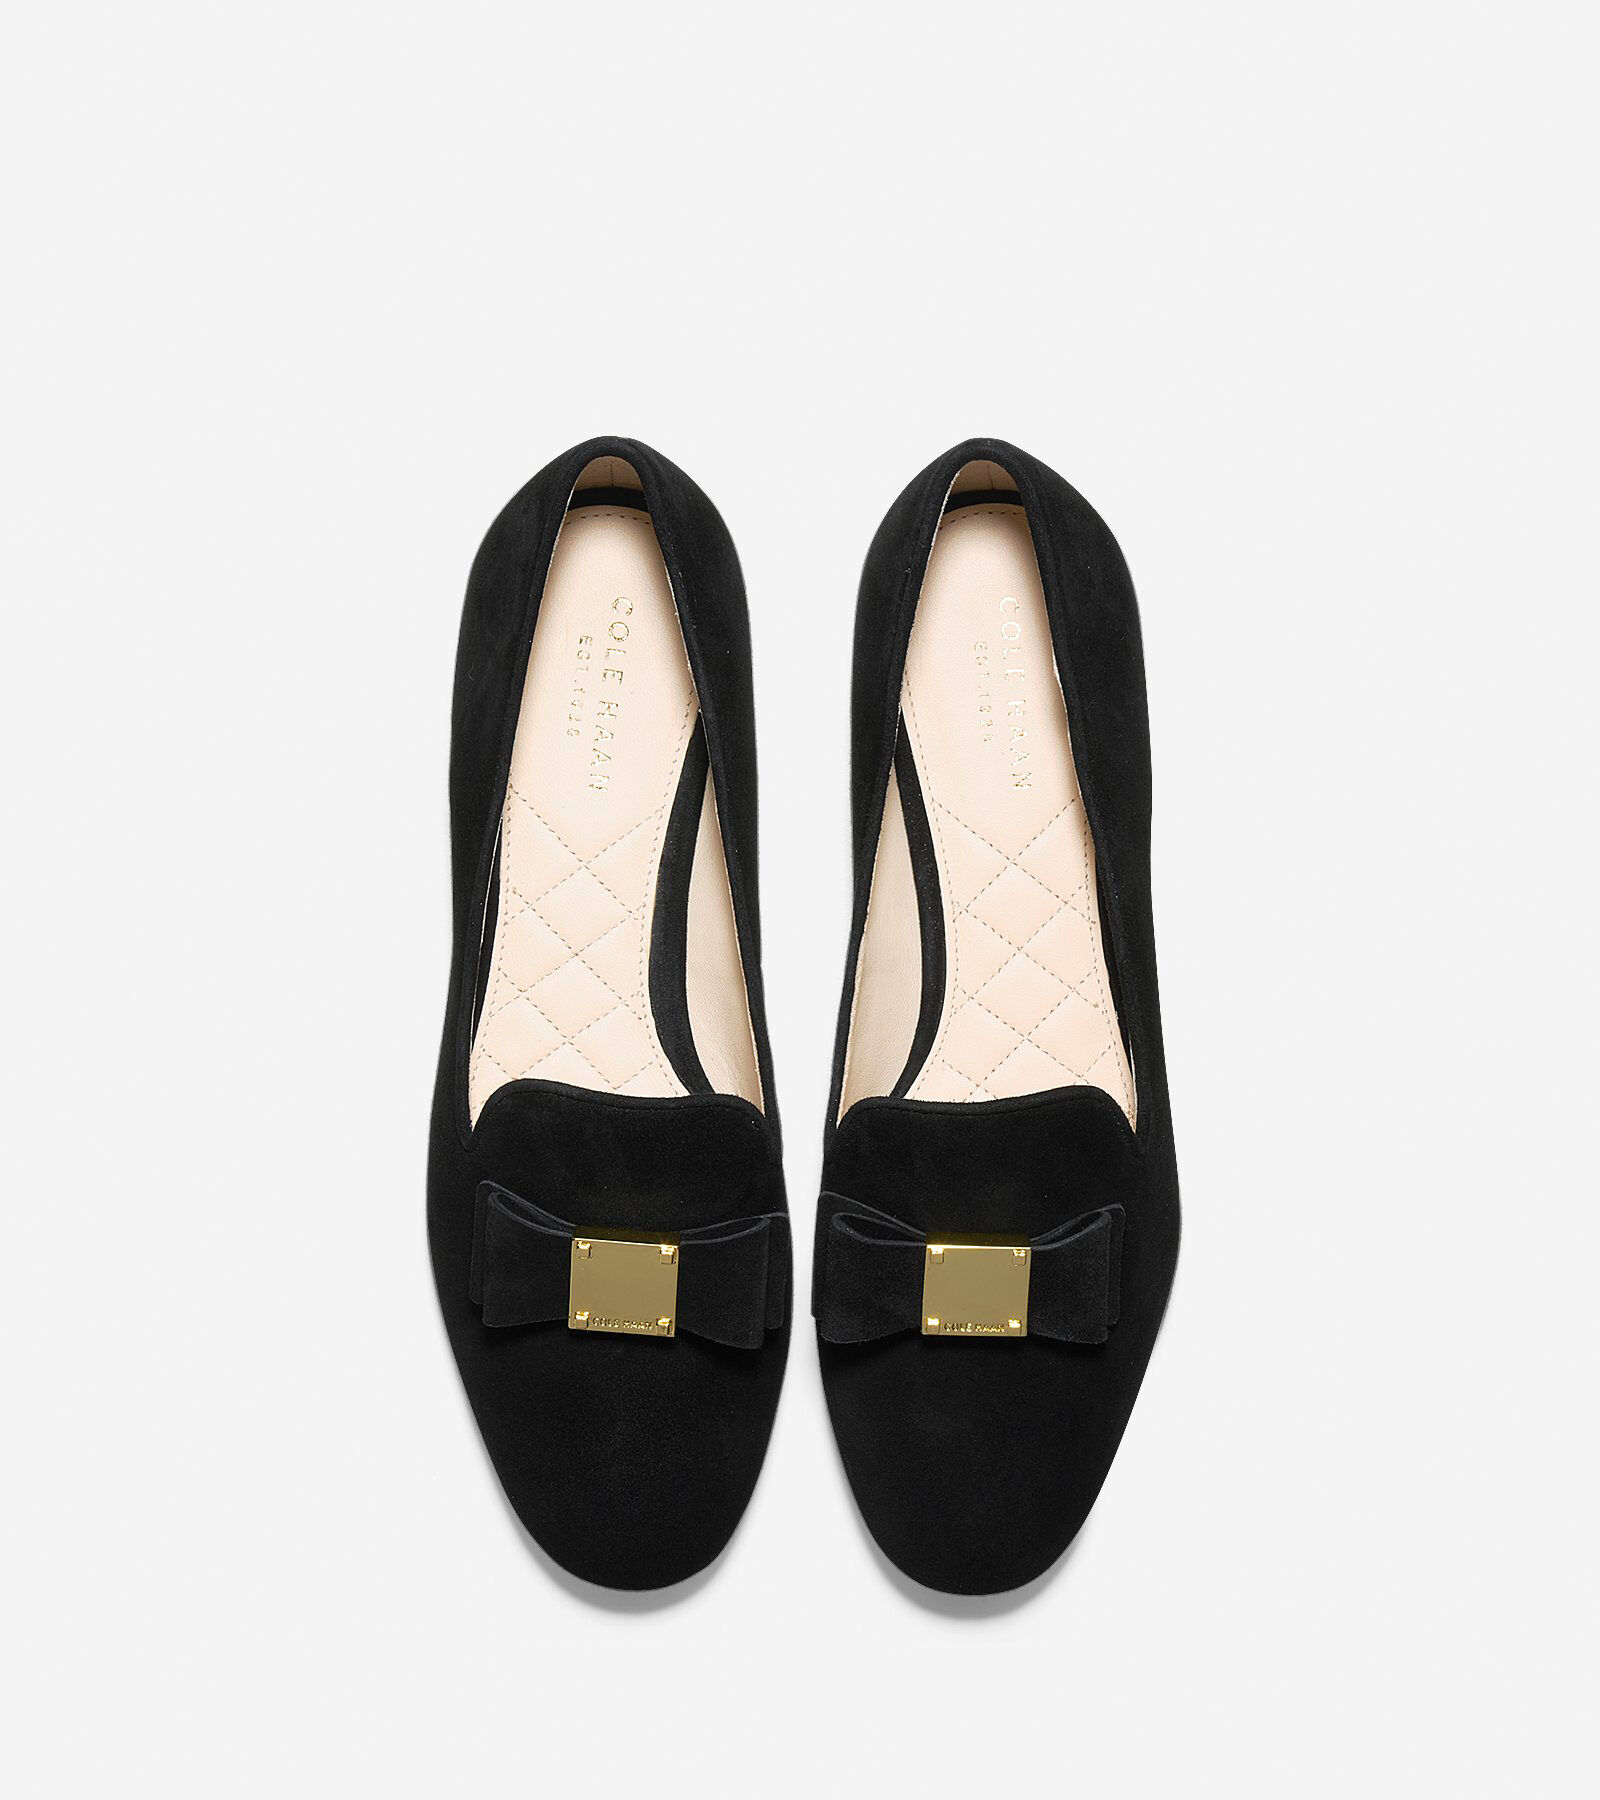 Cole Haan Tally Bow Loafer prOYvJQt